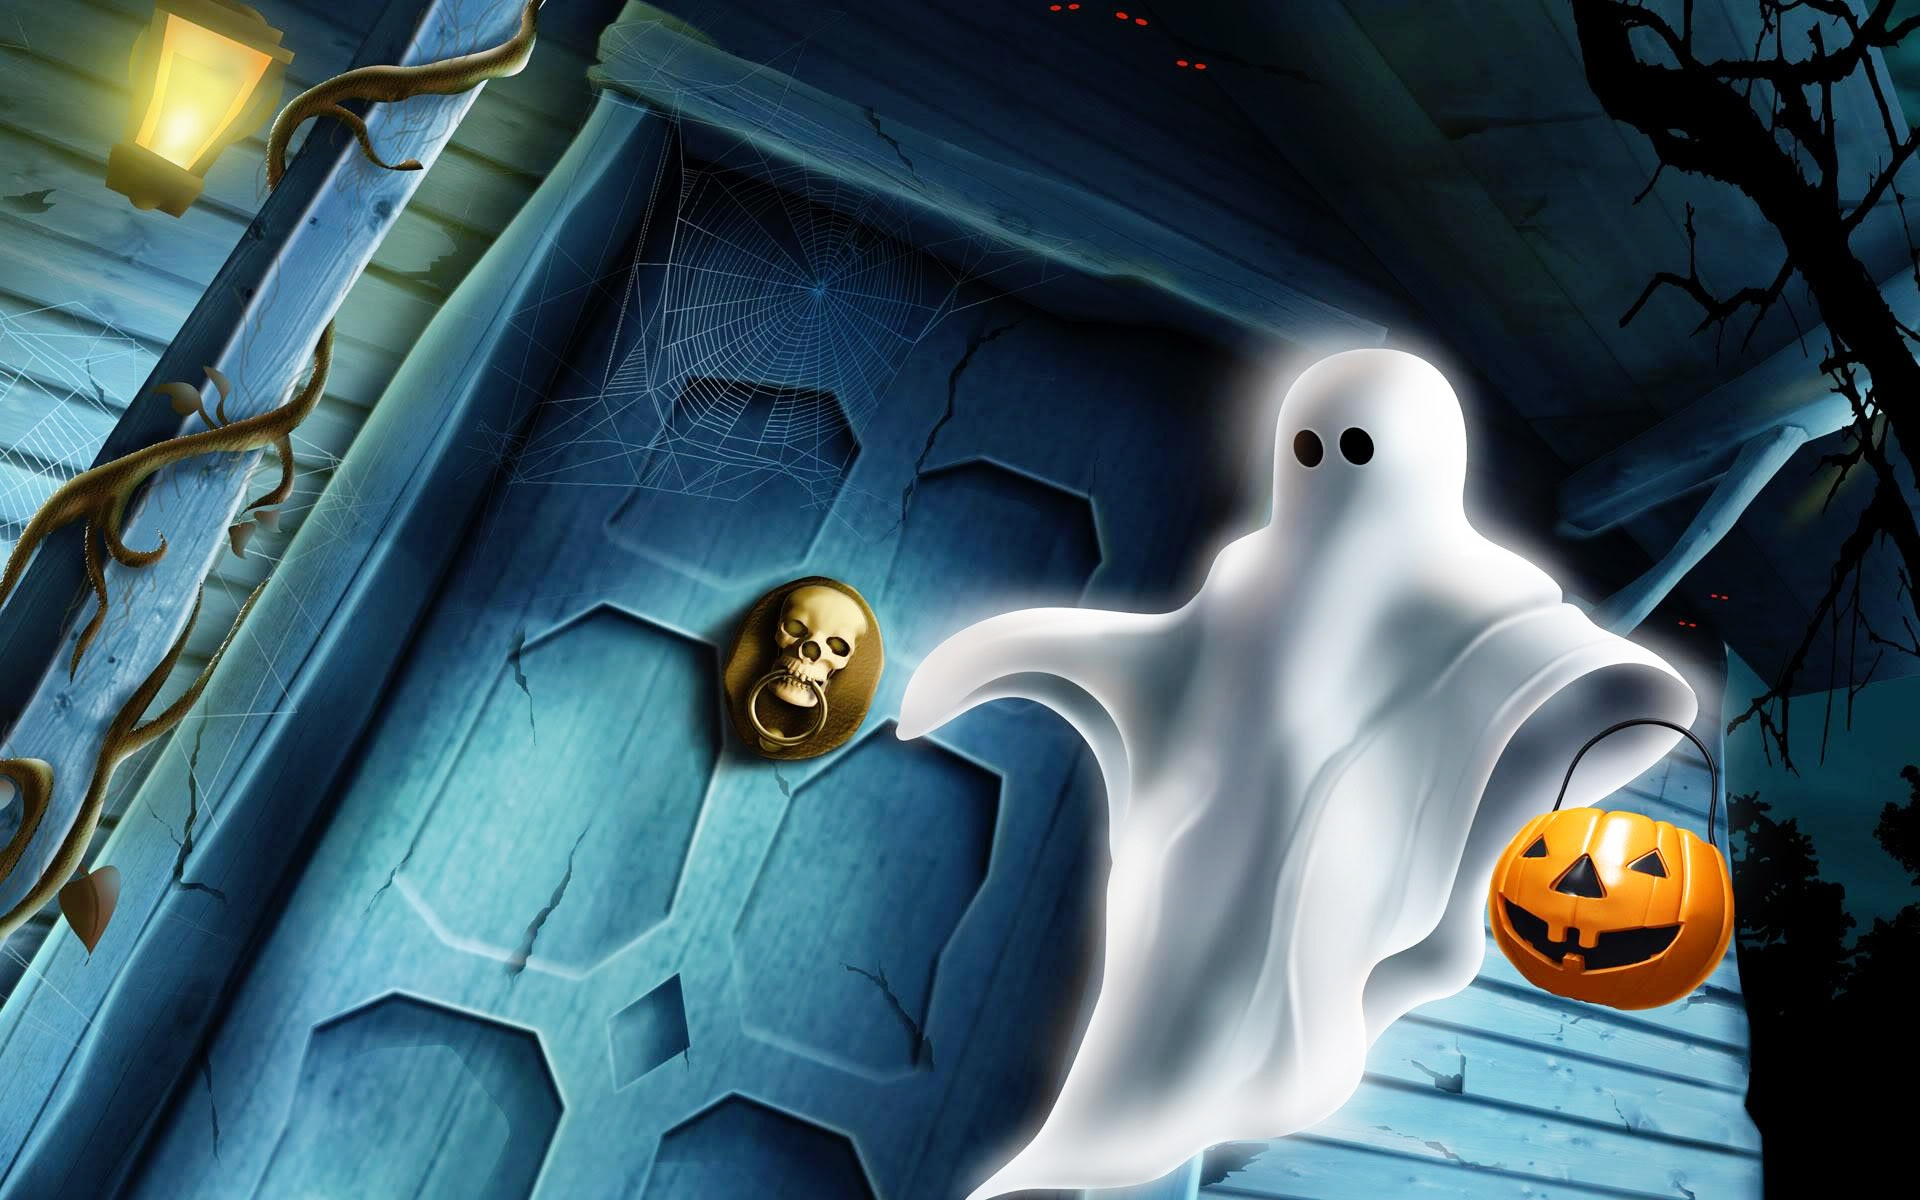 Halloween Ghost 402.55 Kb